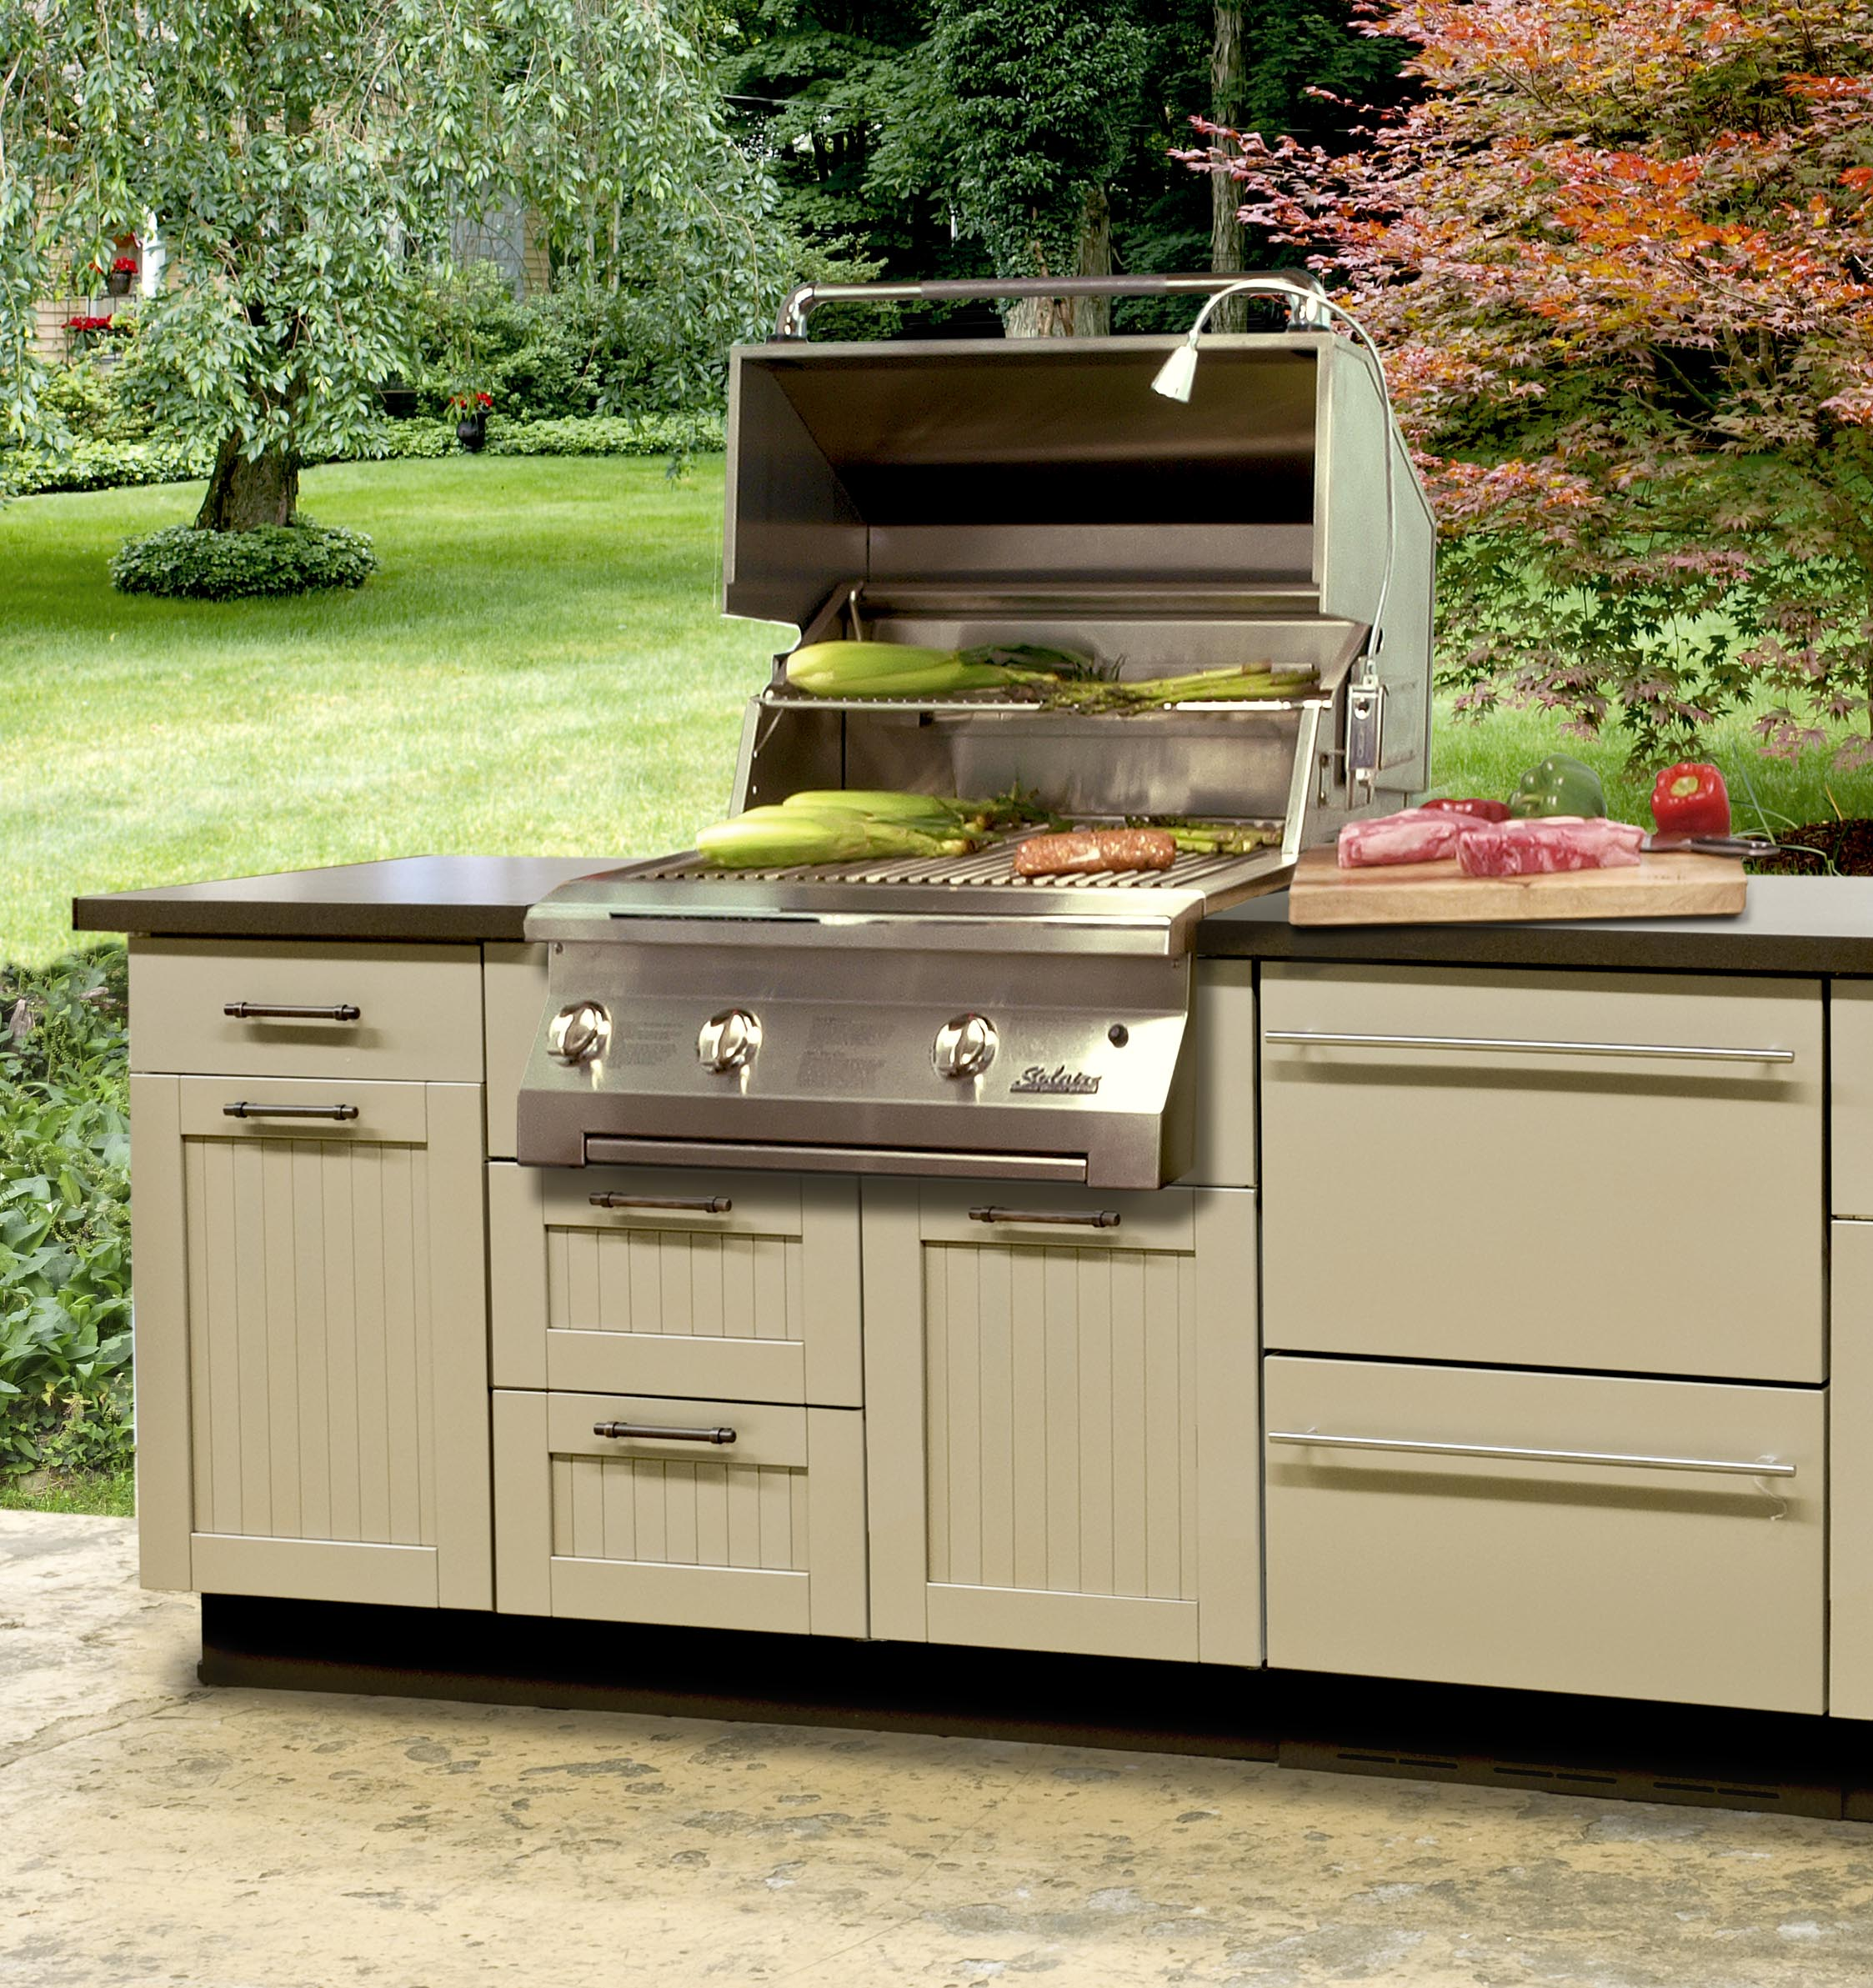 Used Kitchen Cabinets In Maryland: New Trends In Outdoor Kitchen Ideas For 2017